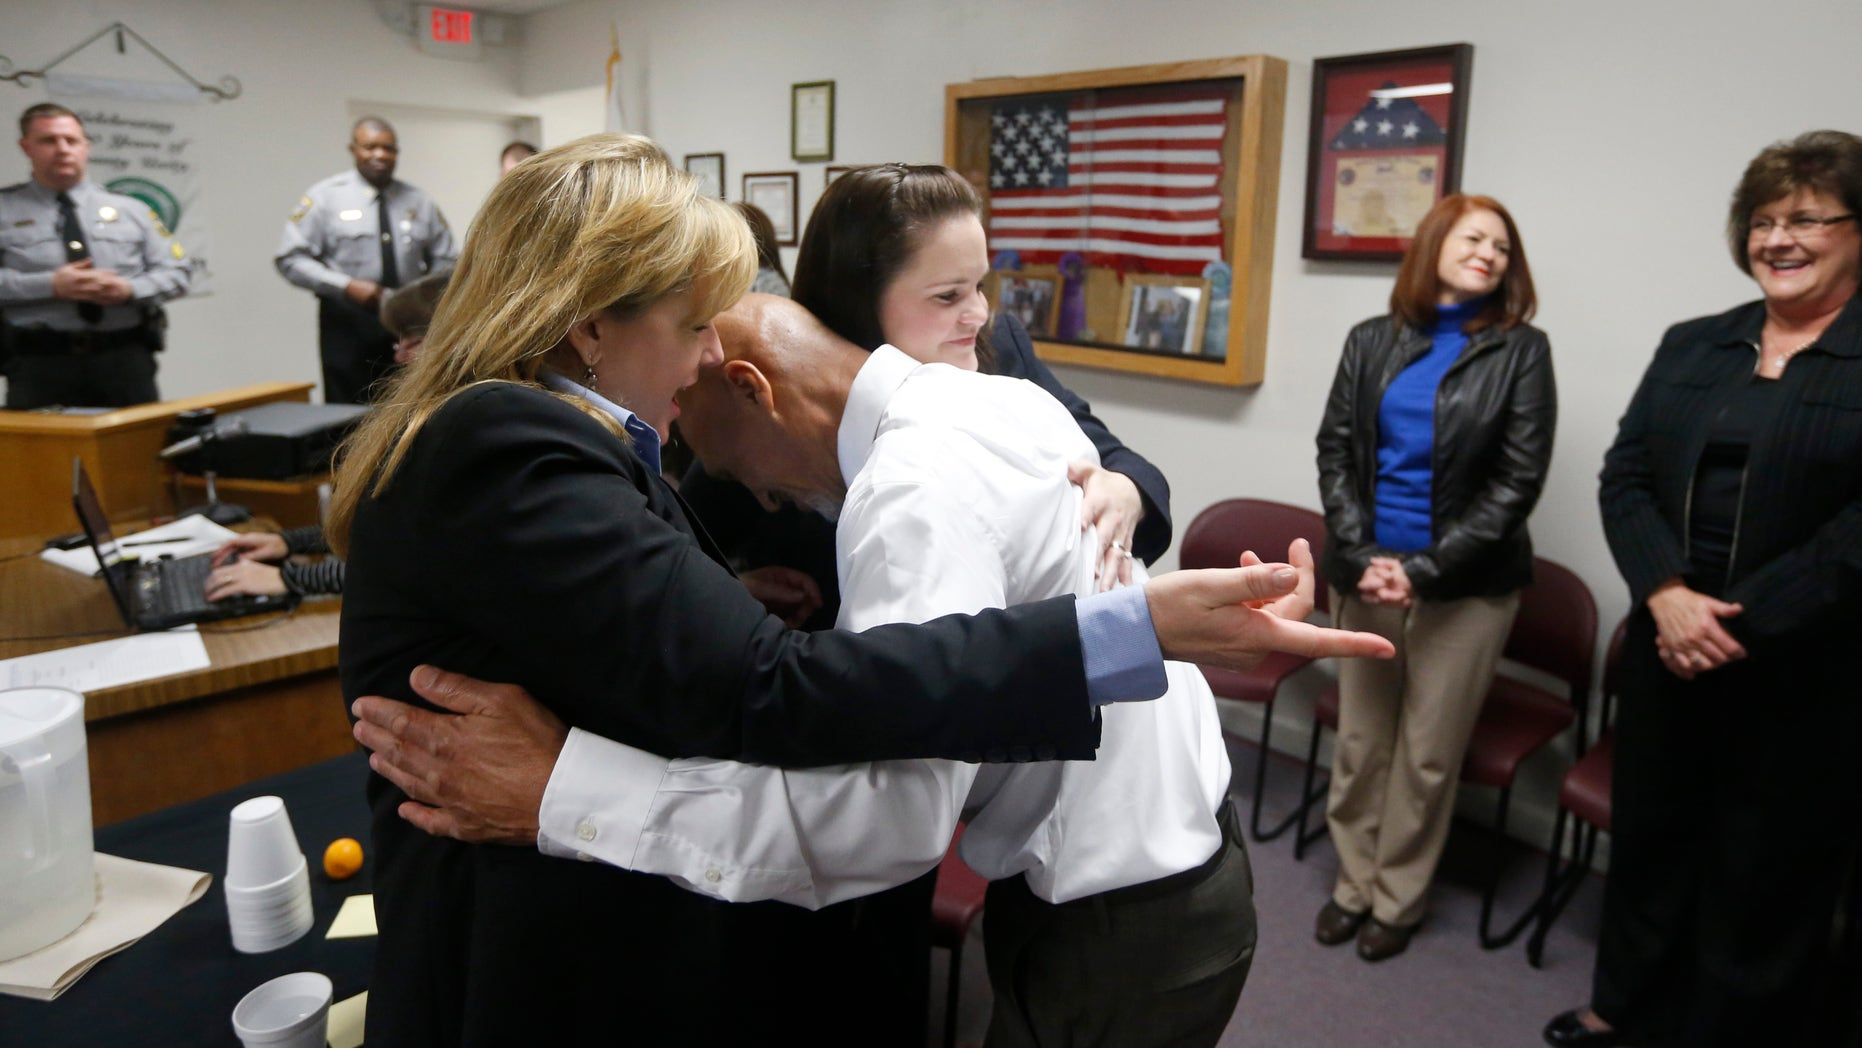 Jan. 23, 2015: Christine Mumma, director of the North Carolina Center on Actual Innocence, left, and Cheryl Sullivan, staff attorney, hug Joseph Sledge after a special session of superior court in Whiteville, N.C.